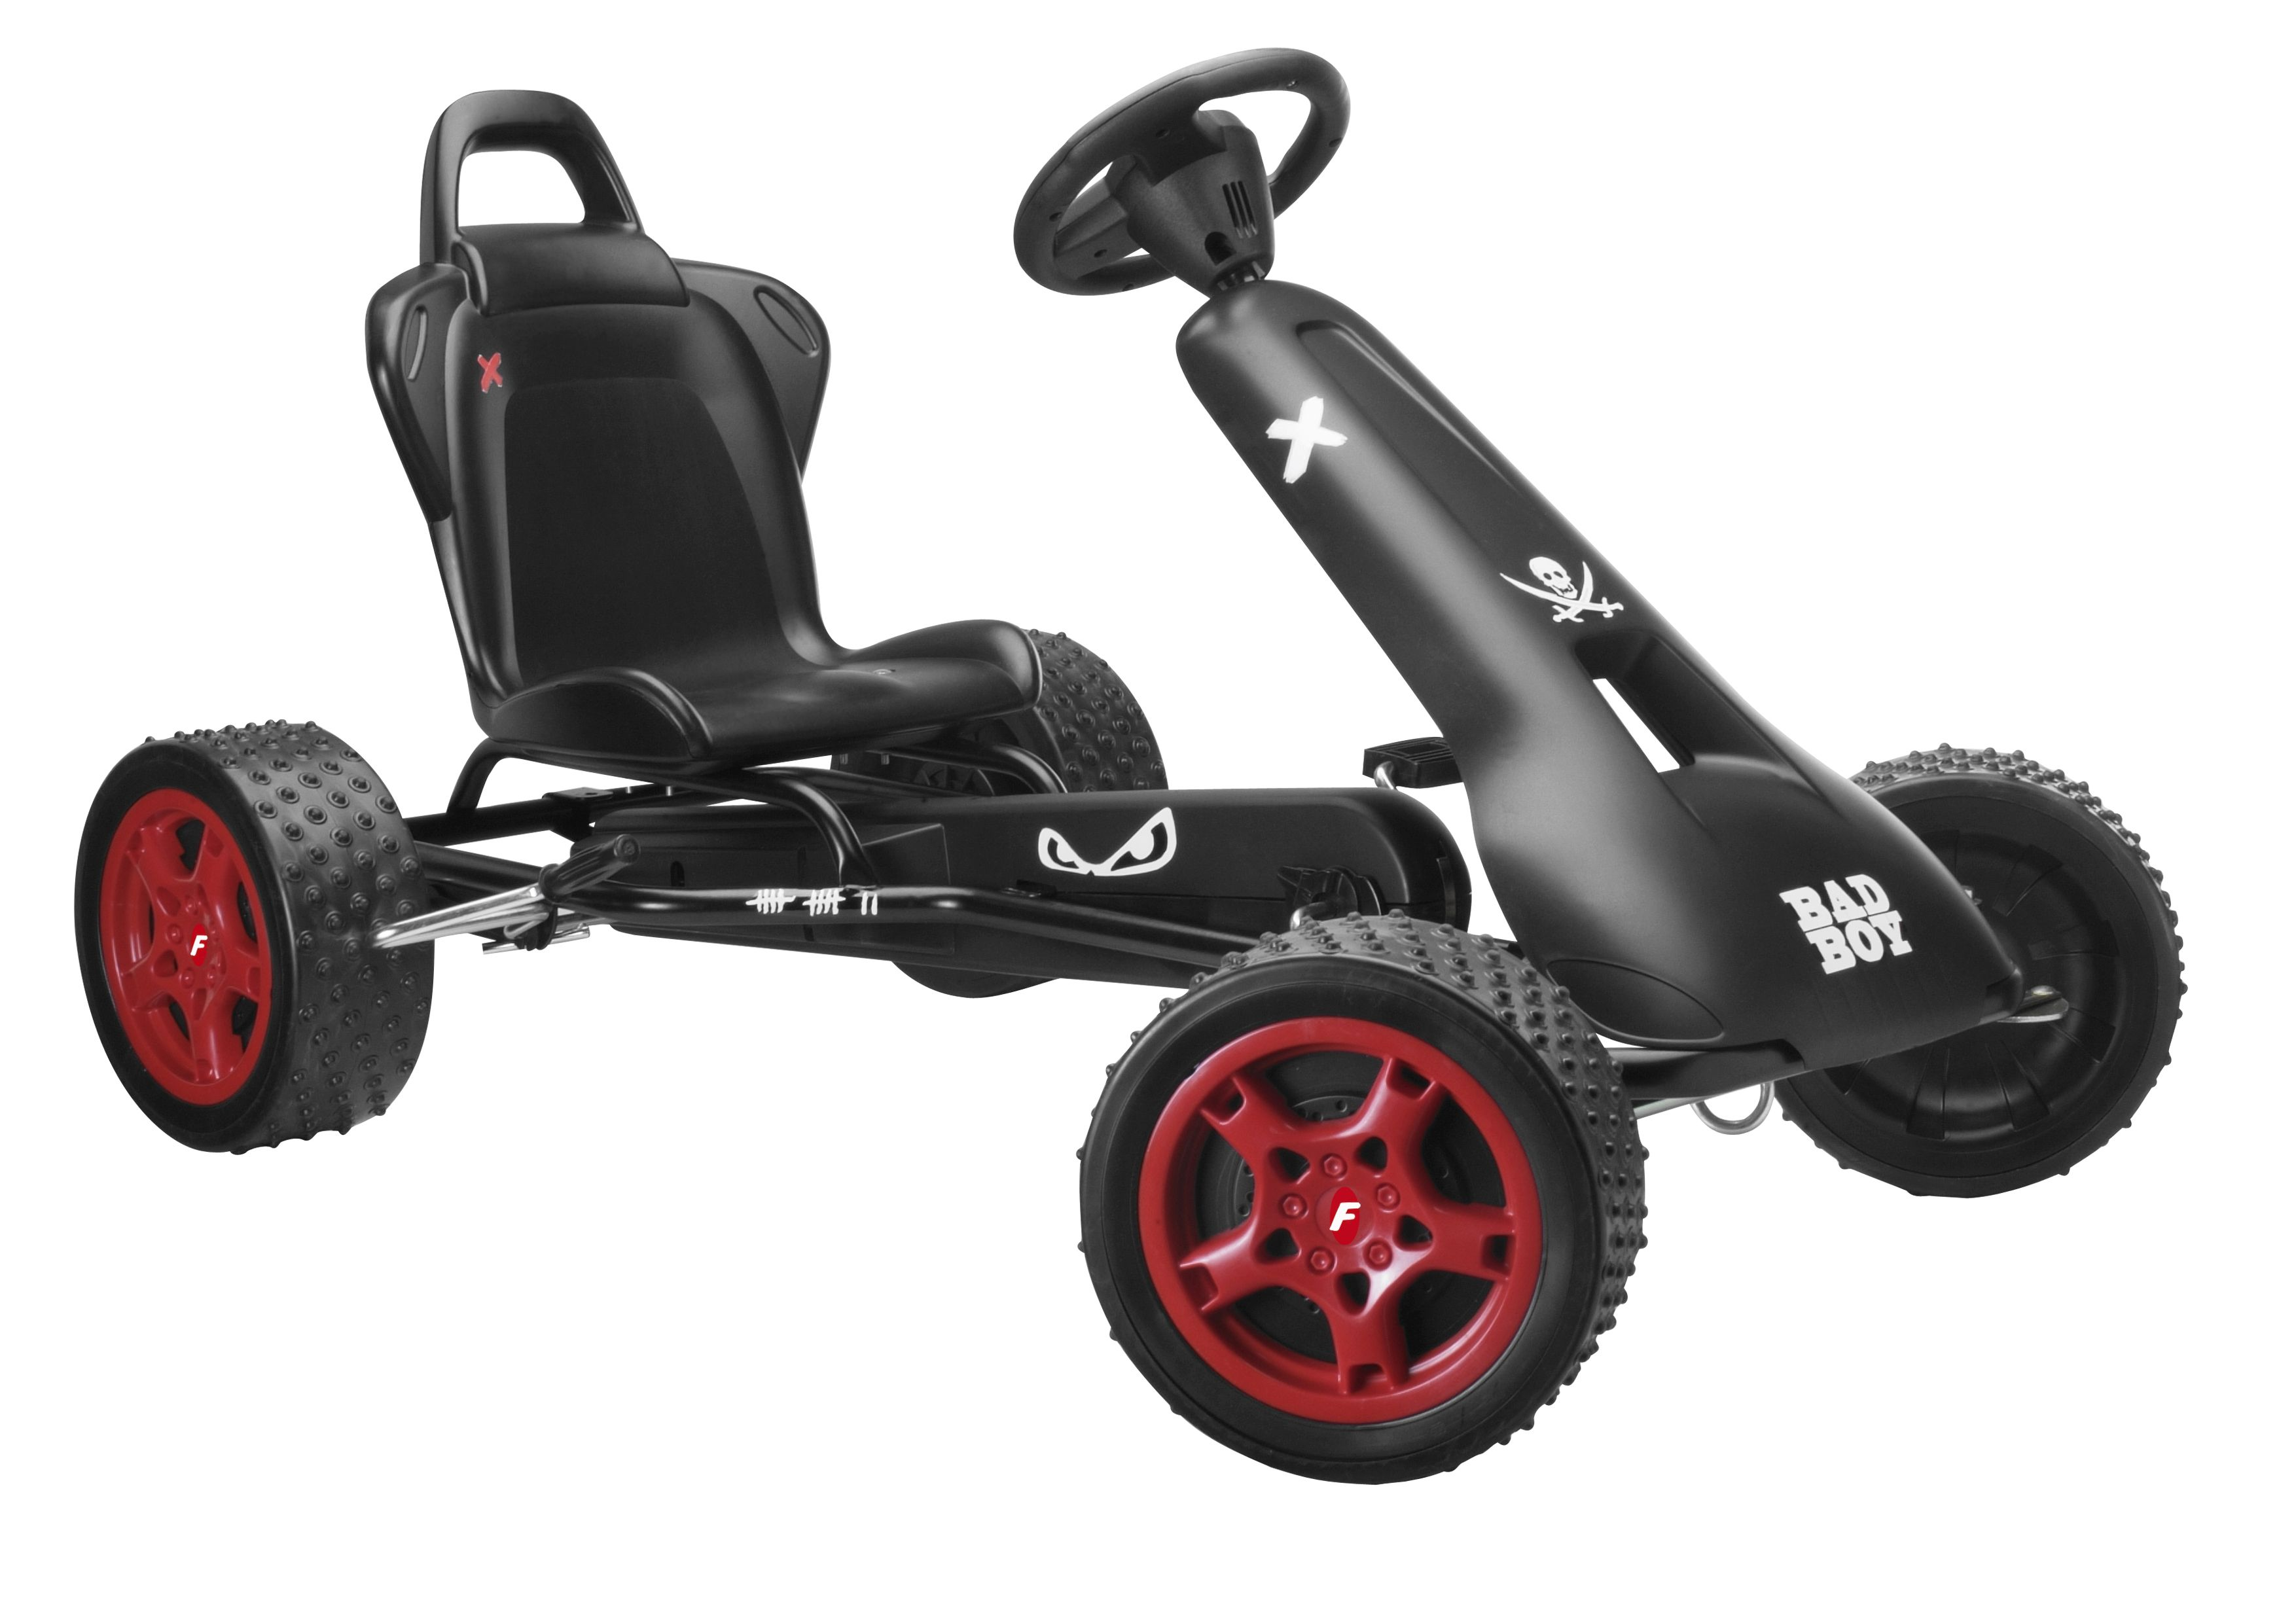 Cross Runner cr-1 Go Kart - Bad Boy Black